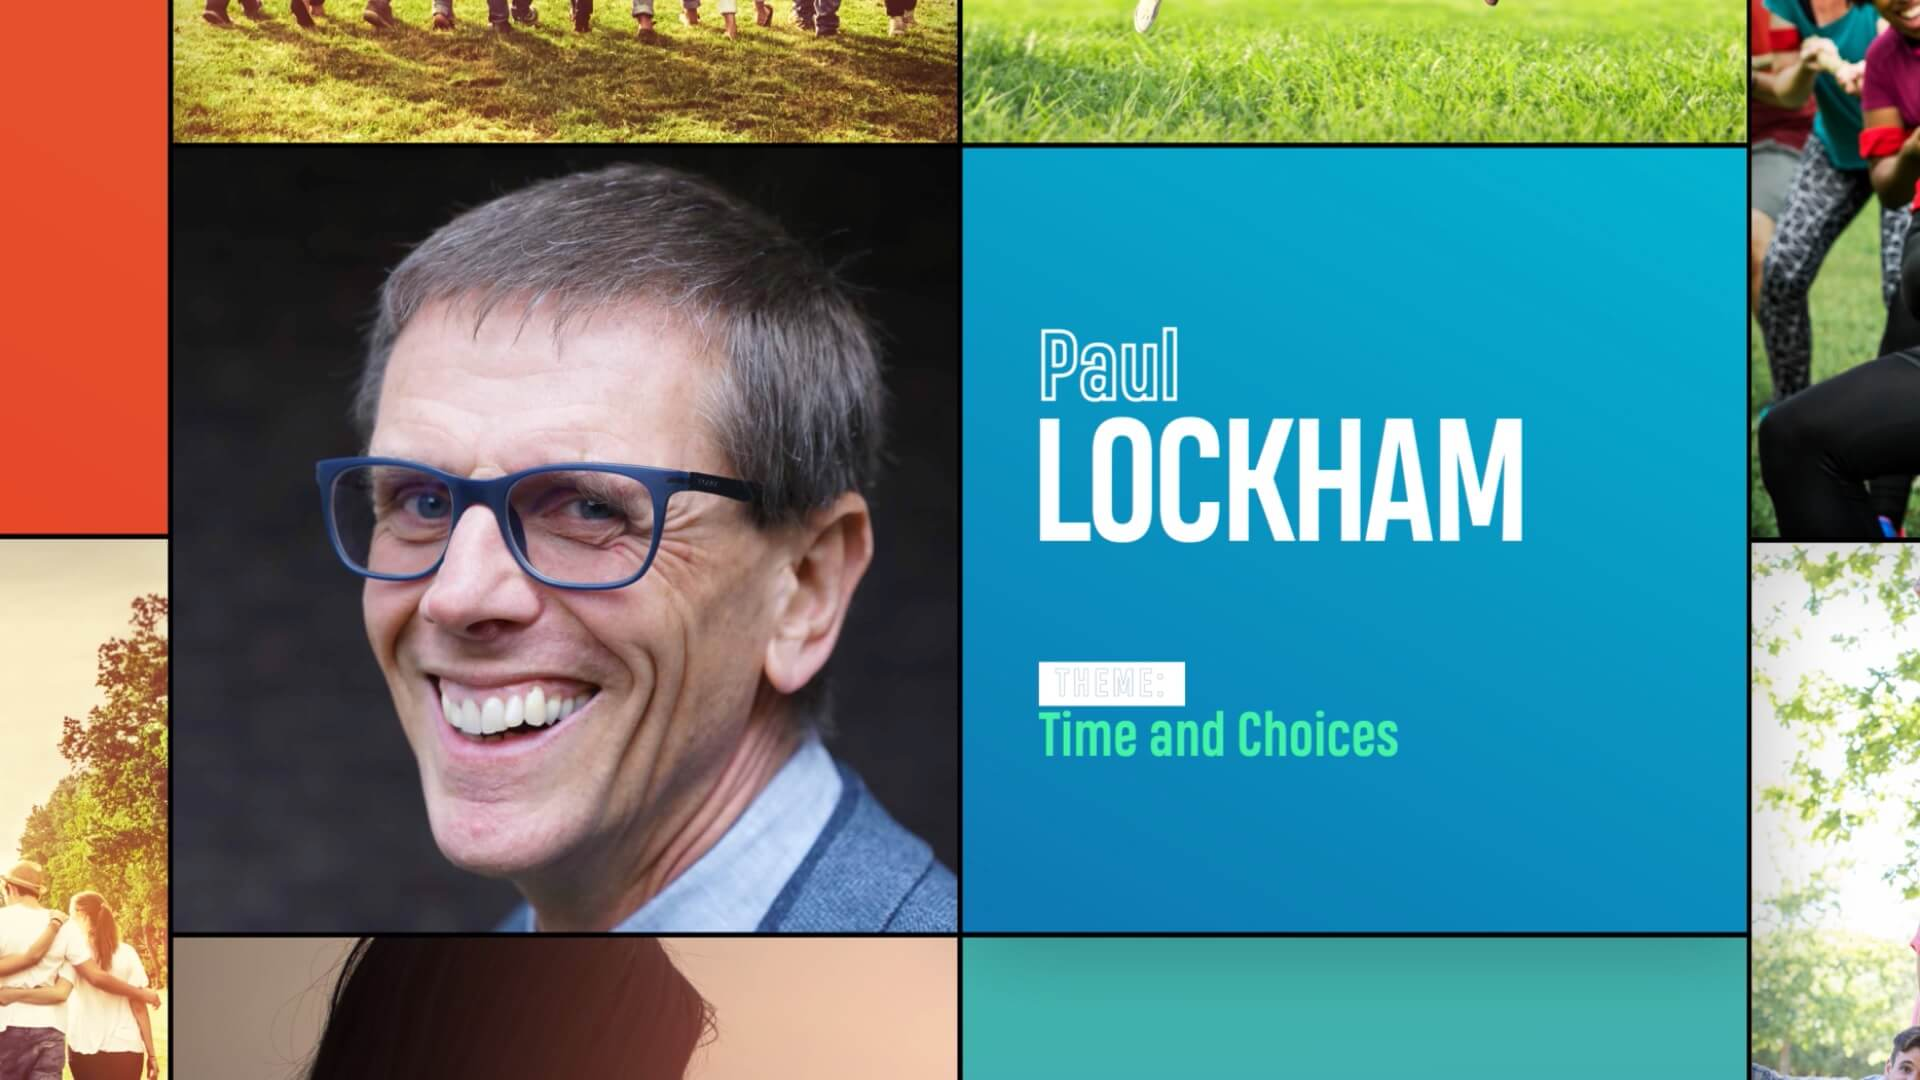 P.Lockham Time and choices